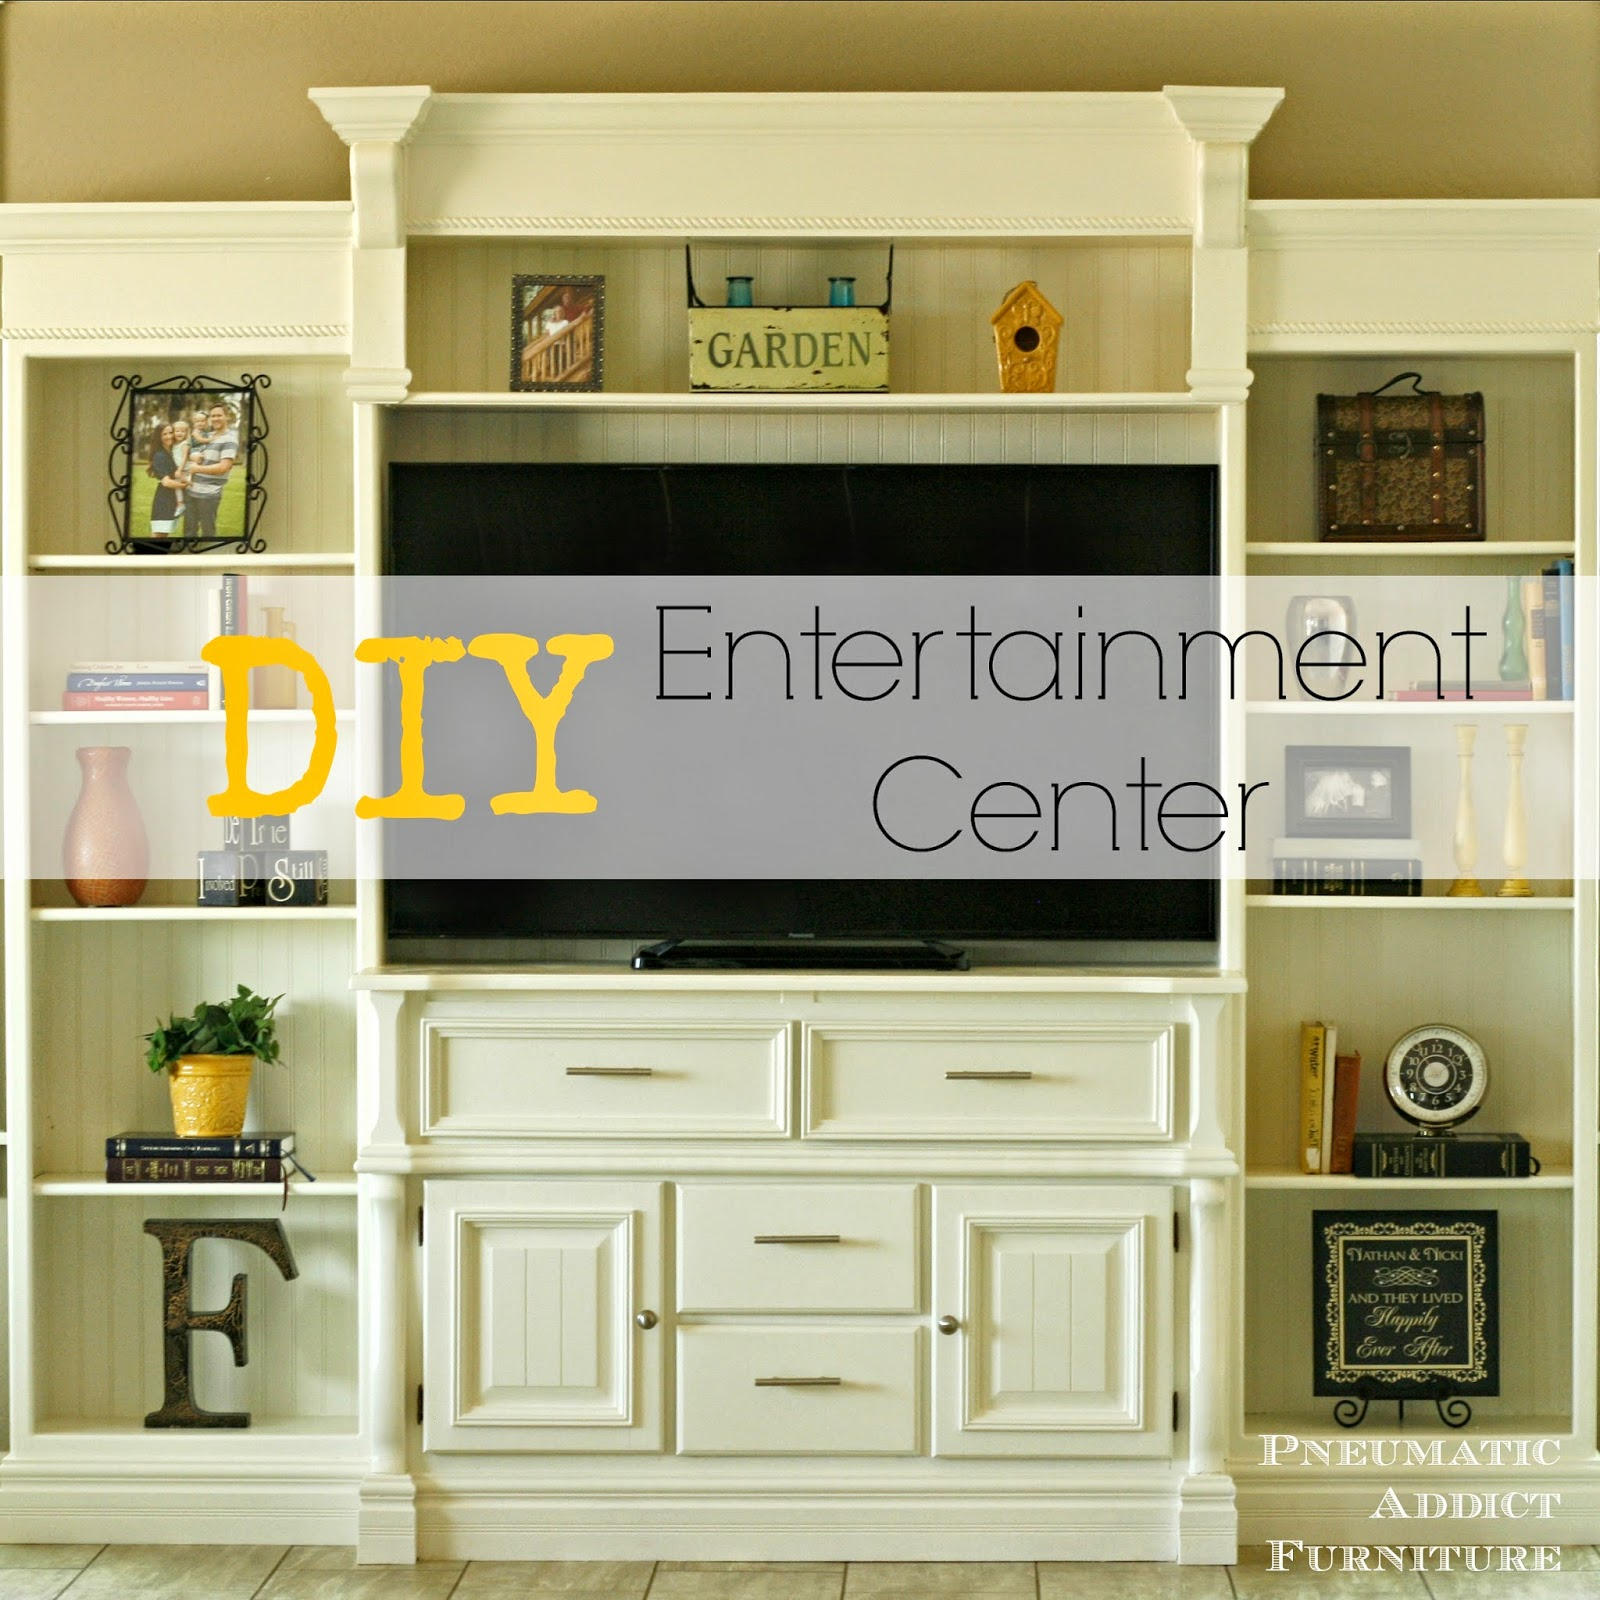 DIY Entertainment Center | Pneumatic Addict